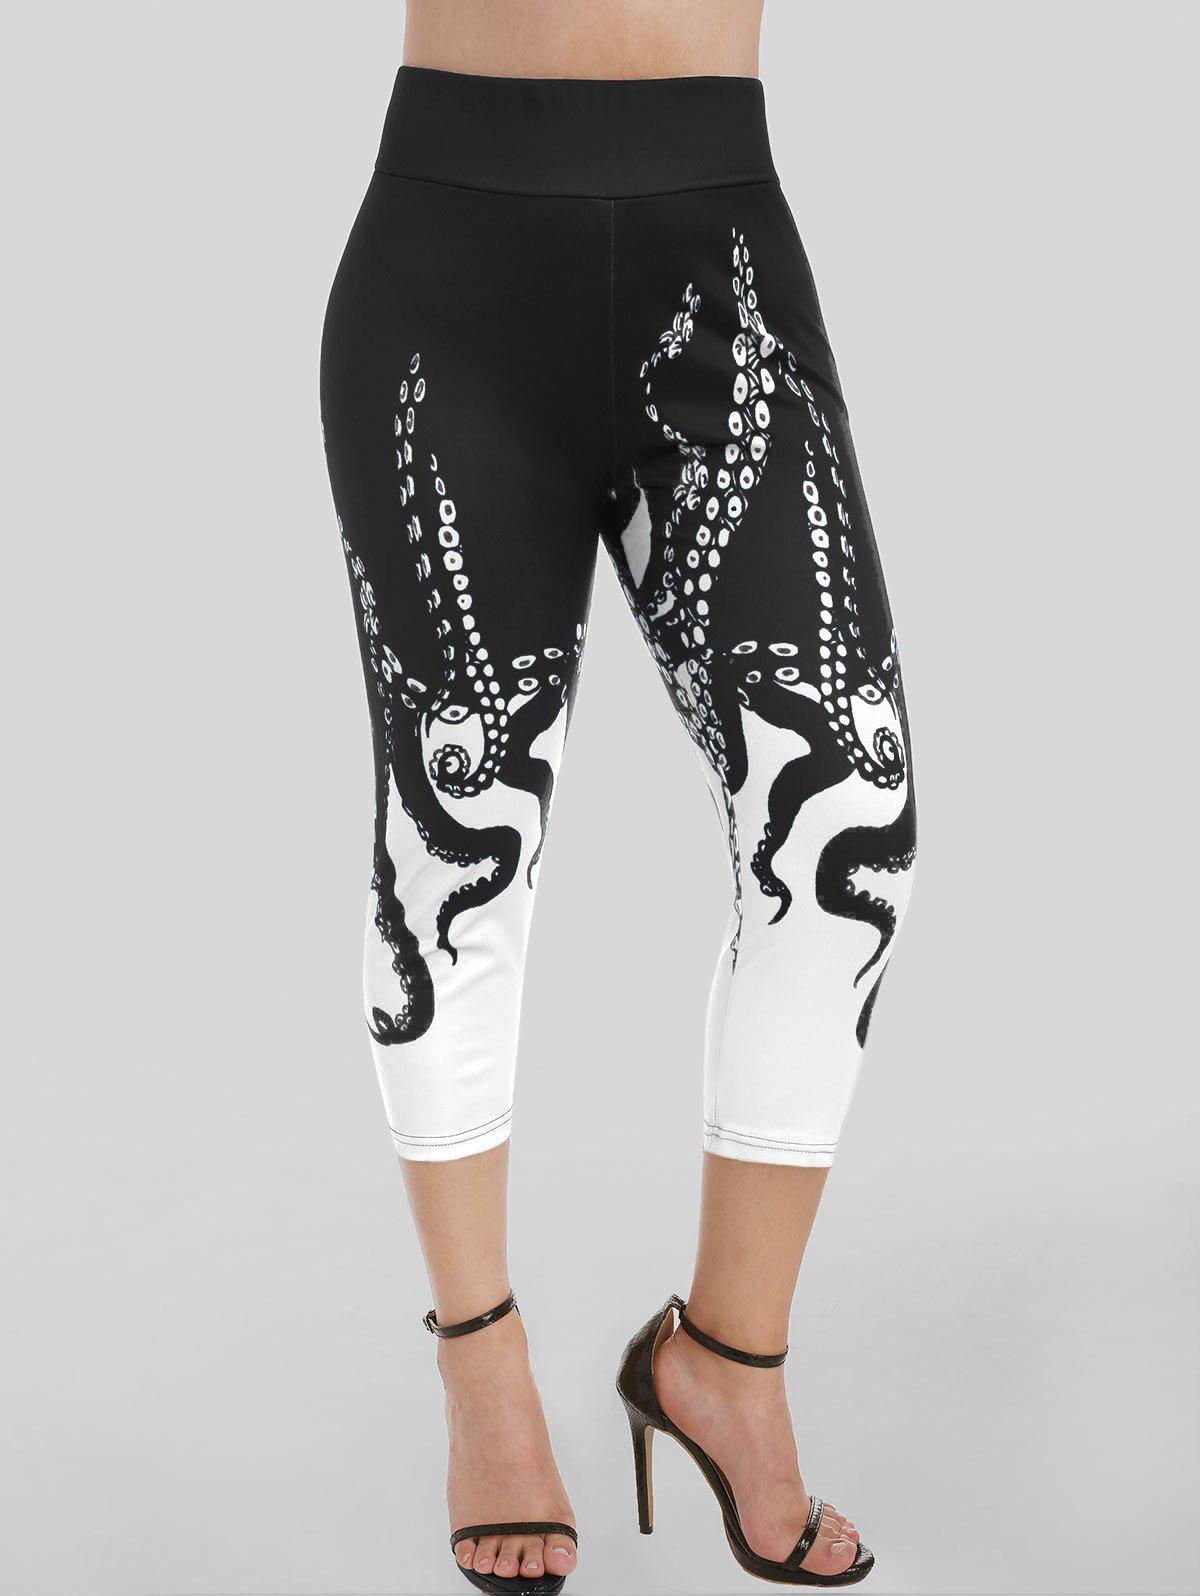 High Waisted Octopus Print Capri Skinny Leggings - BLACK M